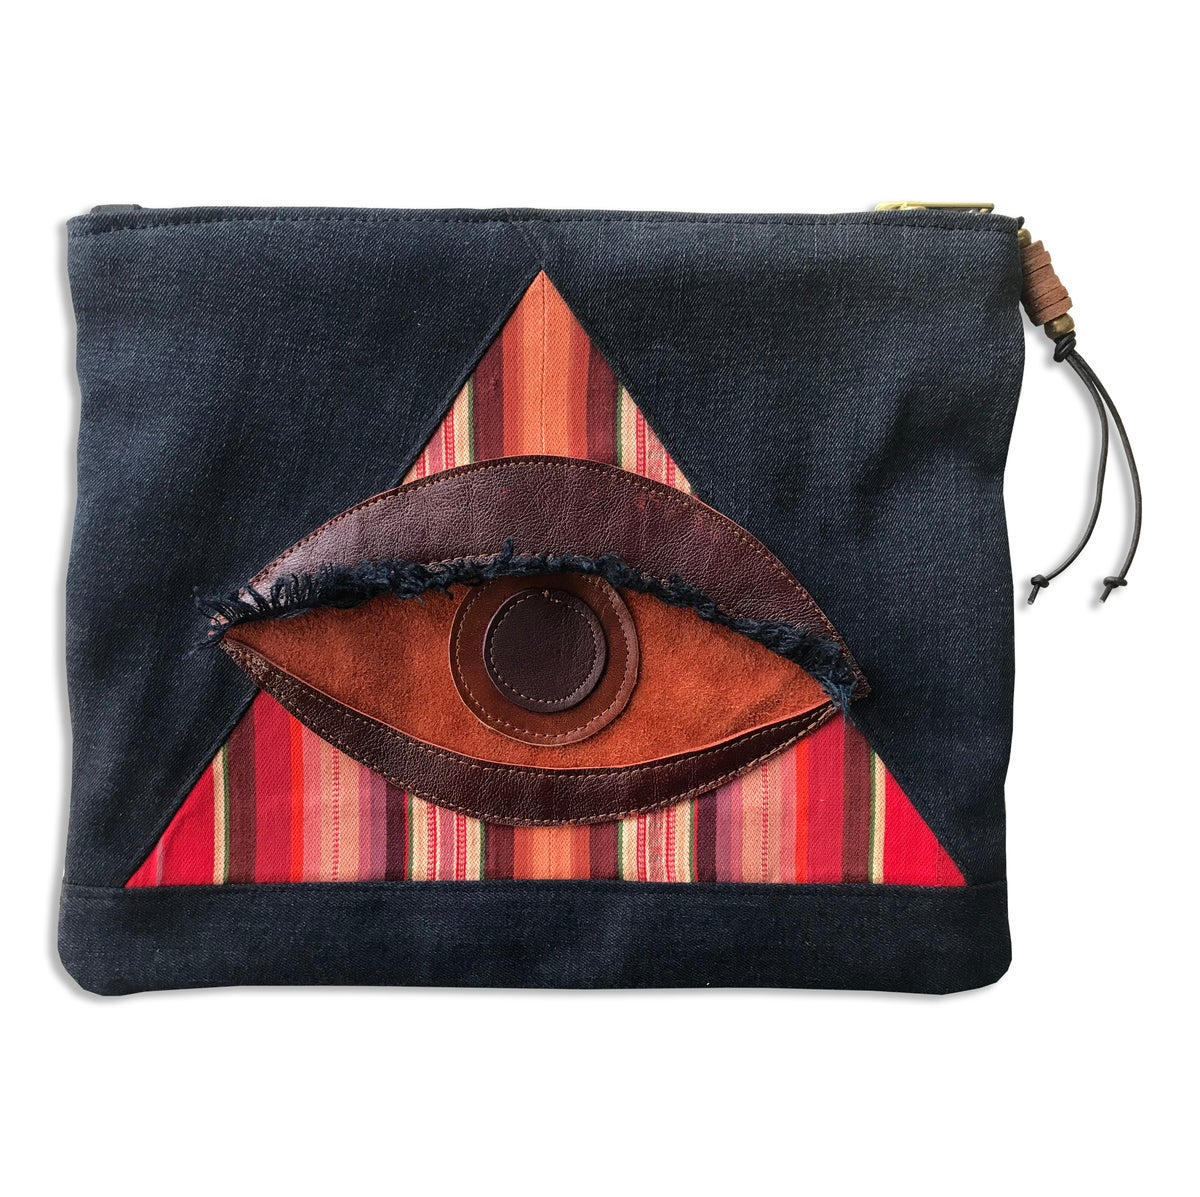 Image of ALL SEEING EYE POUCH - RED JASPER